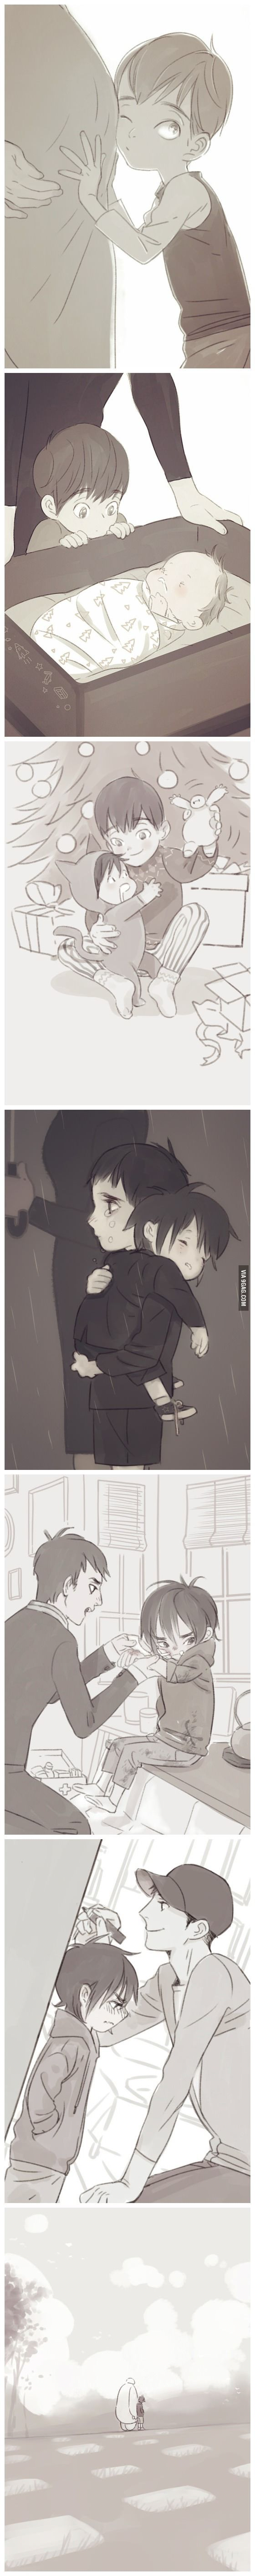 Tadashi and Hiro. Here I was looking at Disneys film Big Hero 6. I admire its simple lines. I could use this as a reference for my ideas